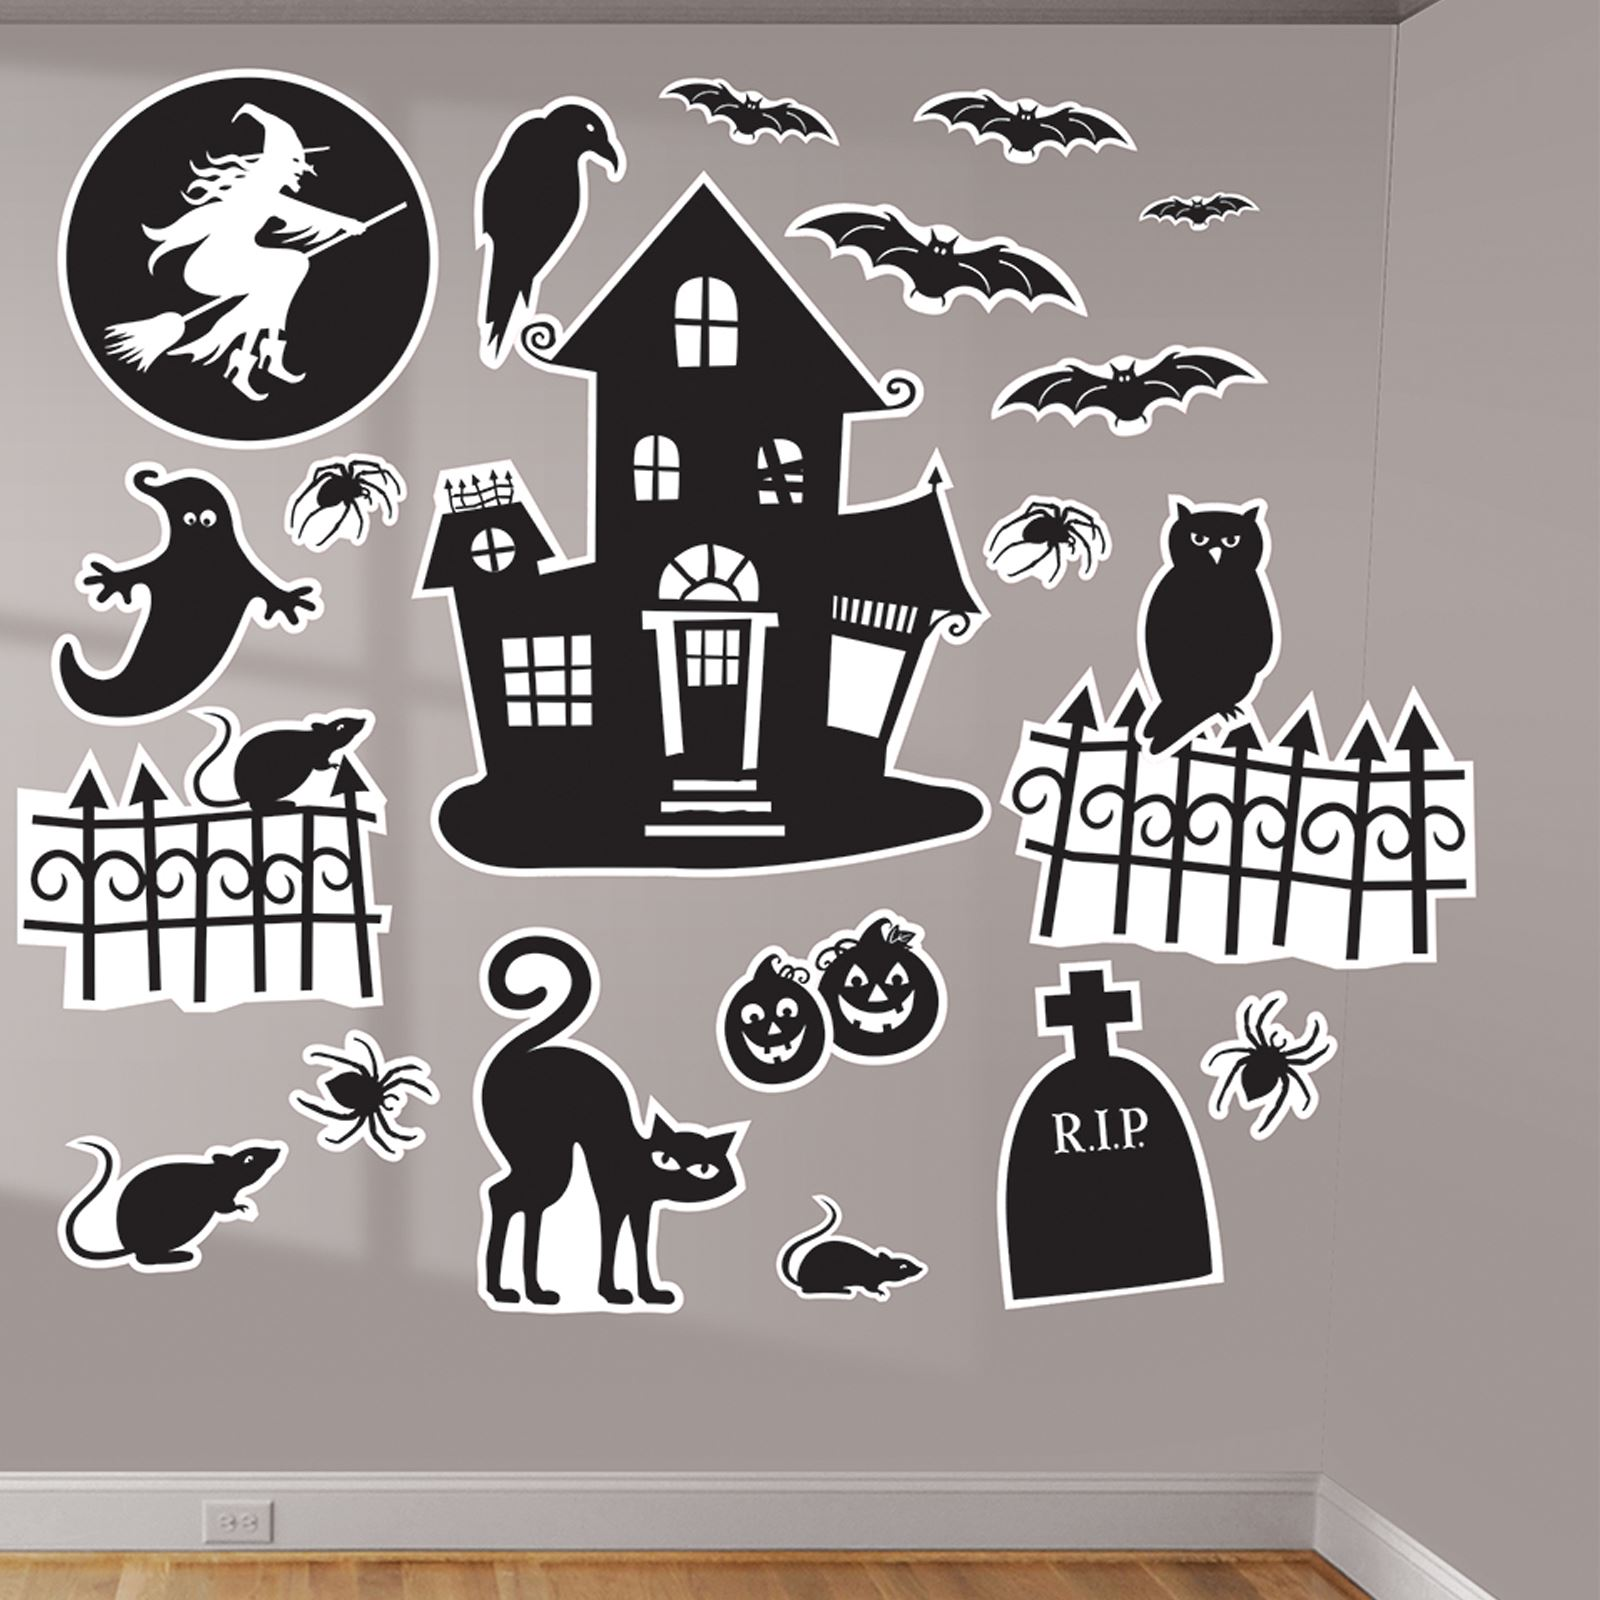 Details about Halloween Family Friendly Wall Art Vinyl Witches Decorative Stickers Silhouette